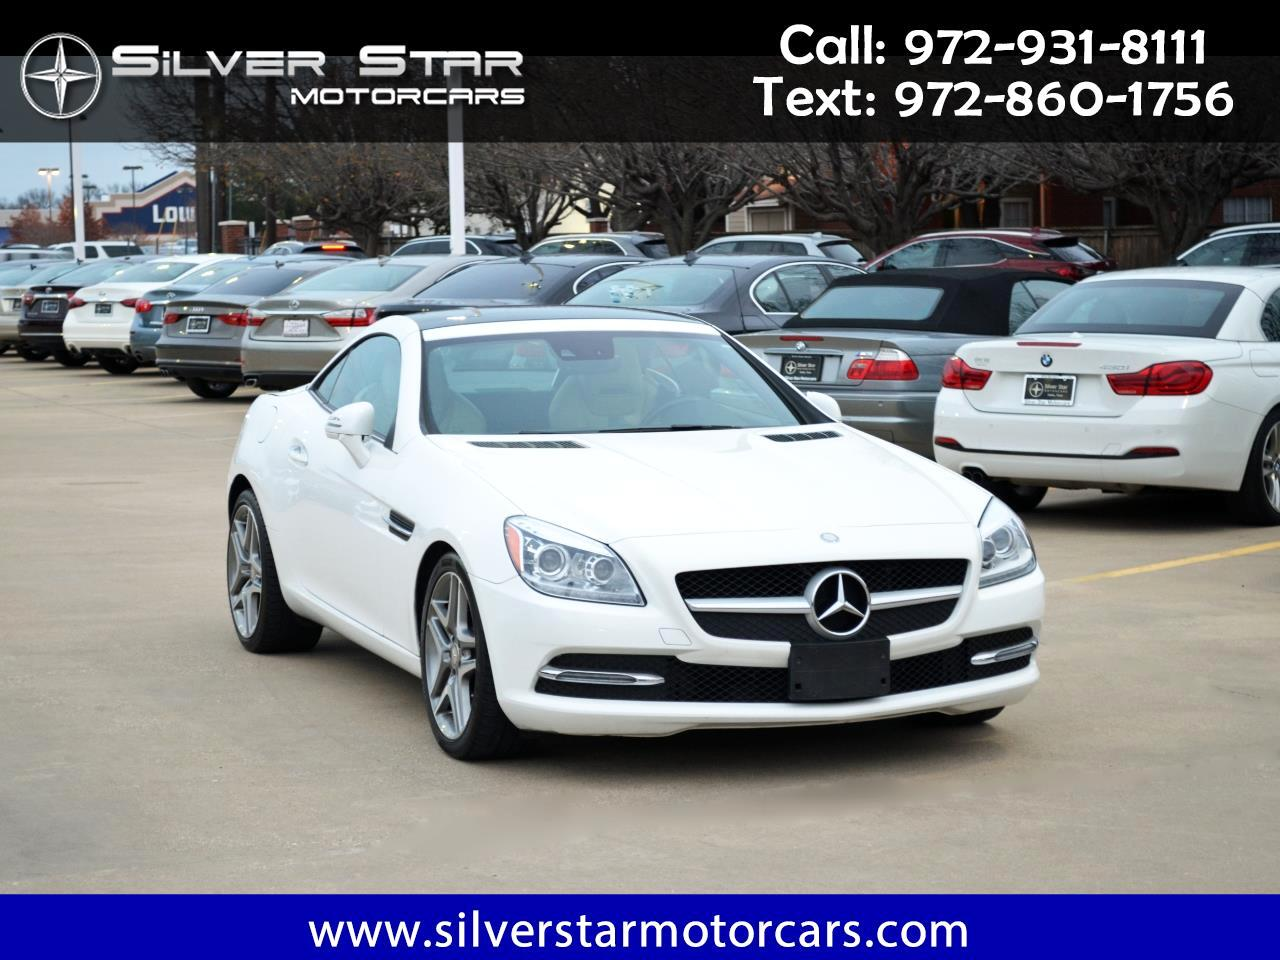 2016 Mercedes-Benz SLK 2dr Roadster SLK 300